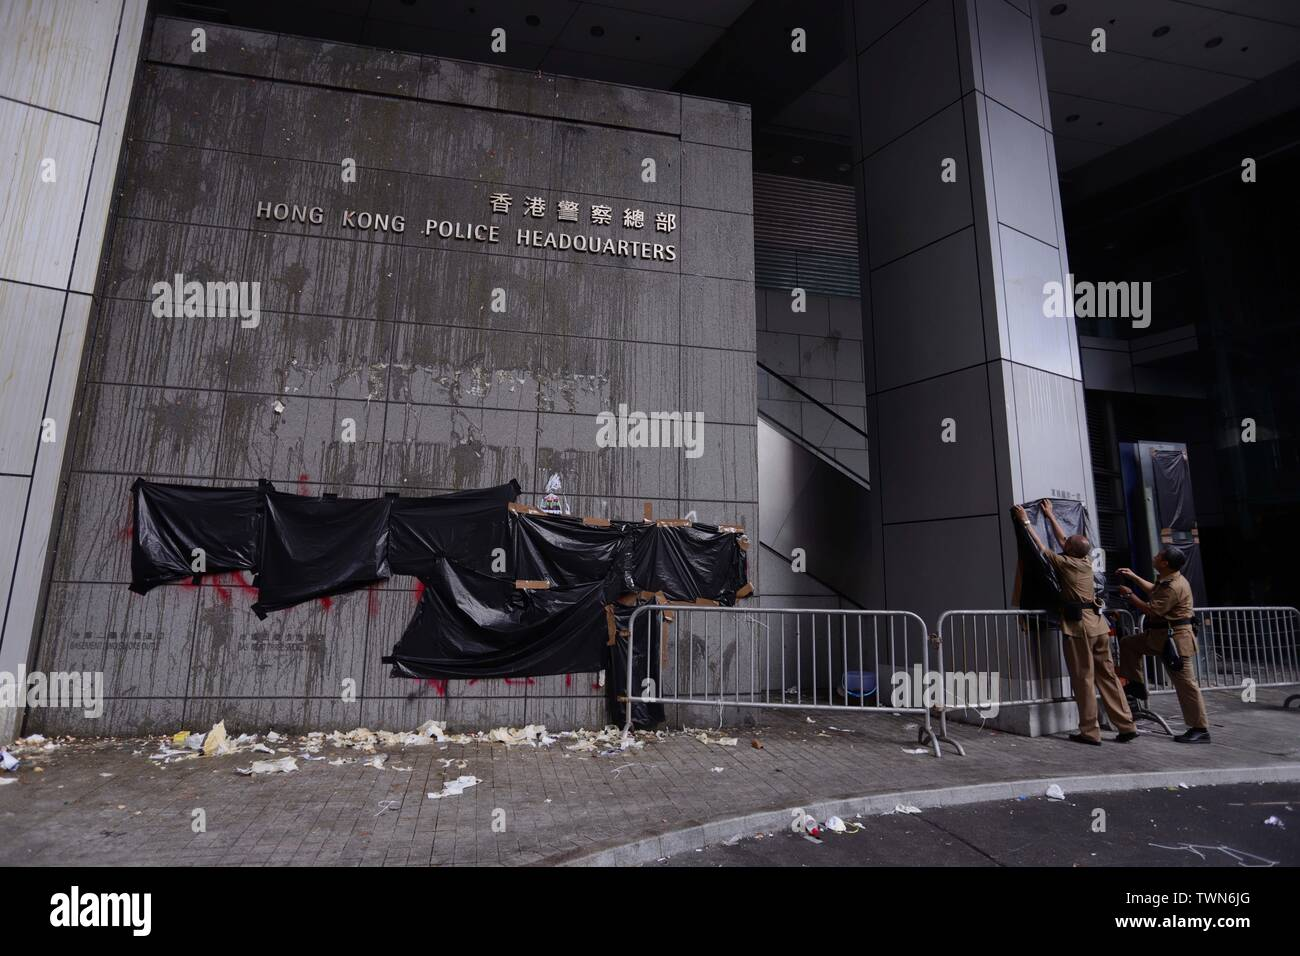 Hong Kong. 22nd June, 2019. Servicemen try to cover up political slogans outside severely trashed Hong Kong Police Headquarters in the morning after thousand of demonstrators surrounded Headquarters last night demanding Chief of Police Lo Wai-chung to show up and offer apologies to the citizens.June-22, 2019 Hong Kong.ZUMA/Liau Chung-ren Credit: Liau Chung-ren/ZUMA Wire/Alamy Live News - Stock Image